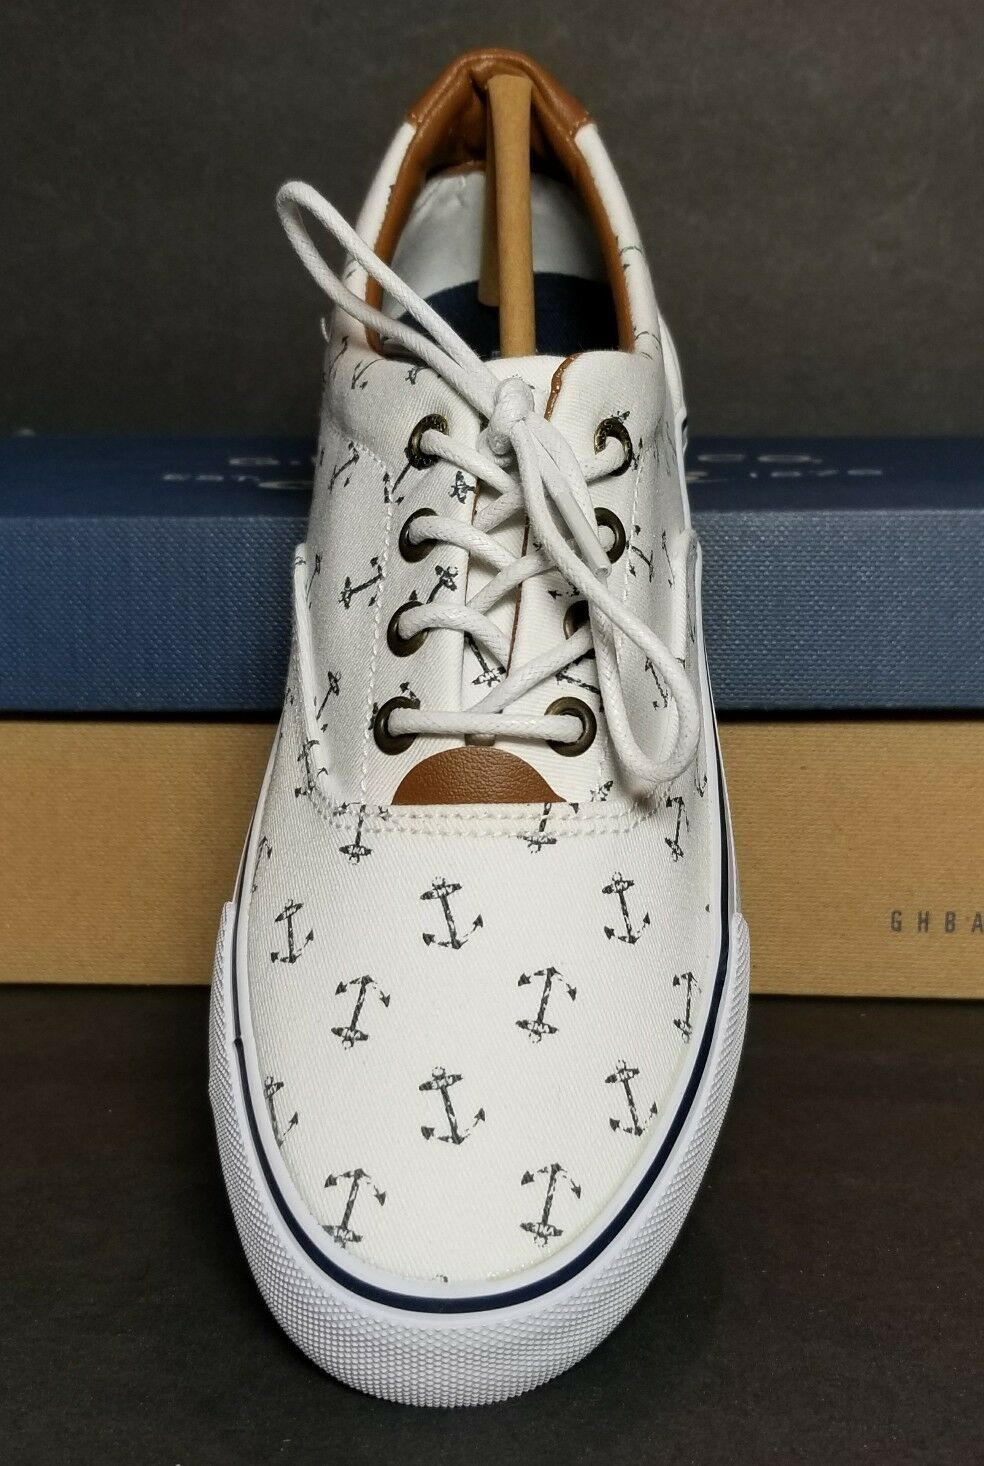 G H BASS SNEAKERS NAUTICAL ANCHORS WOMEN/'S SIZE 5 /& 6 /& 7 NEW //BOX 0253-3522-078